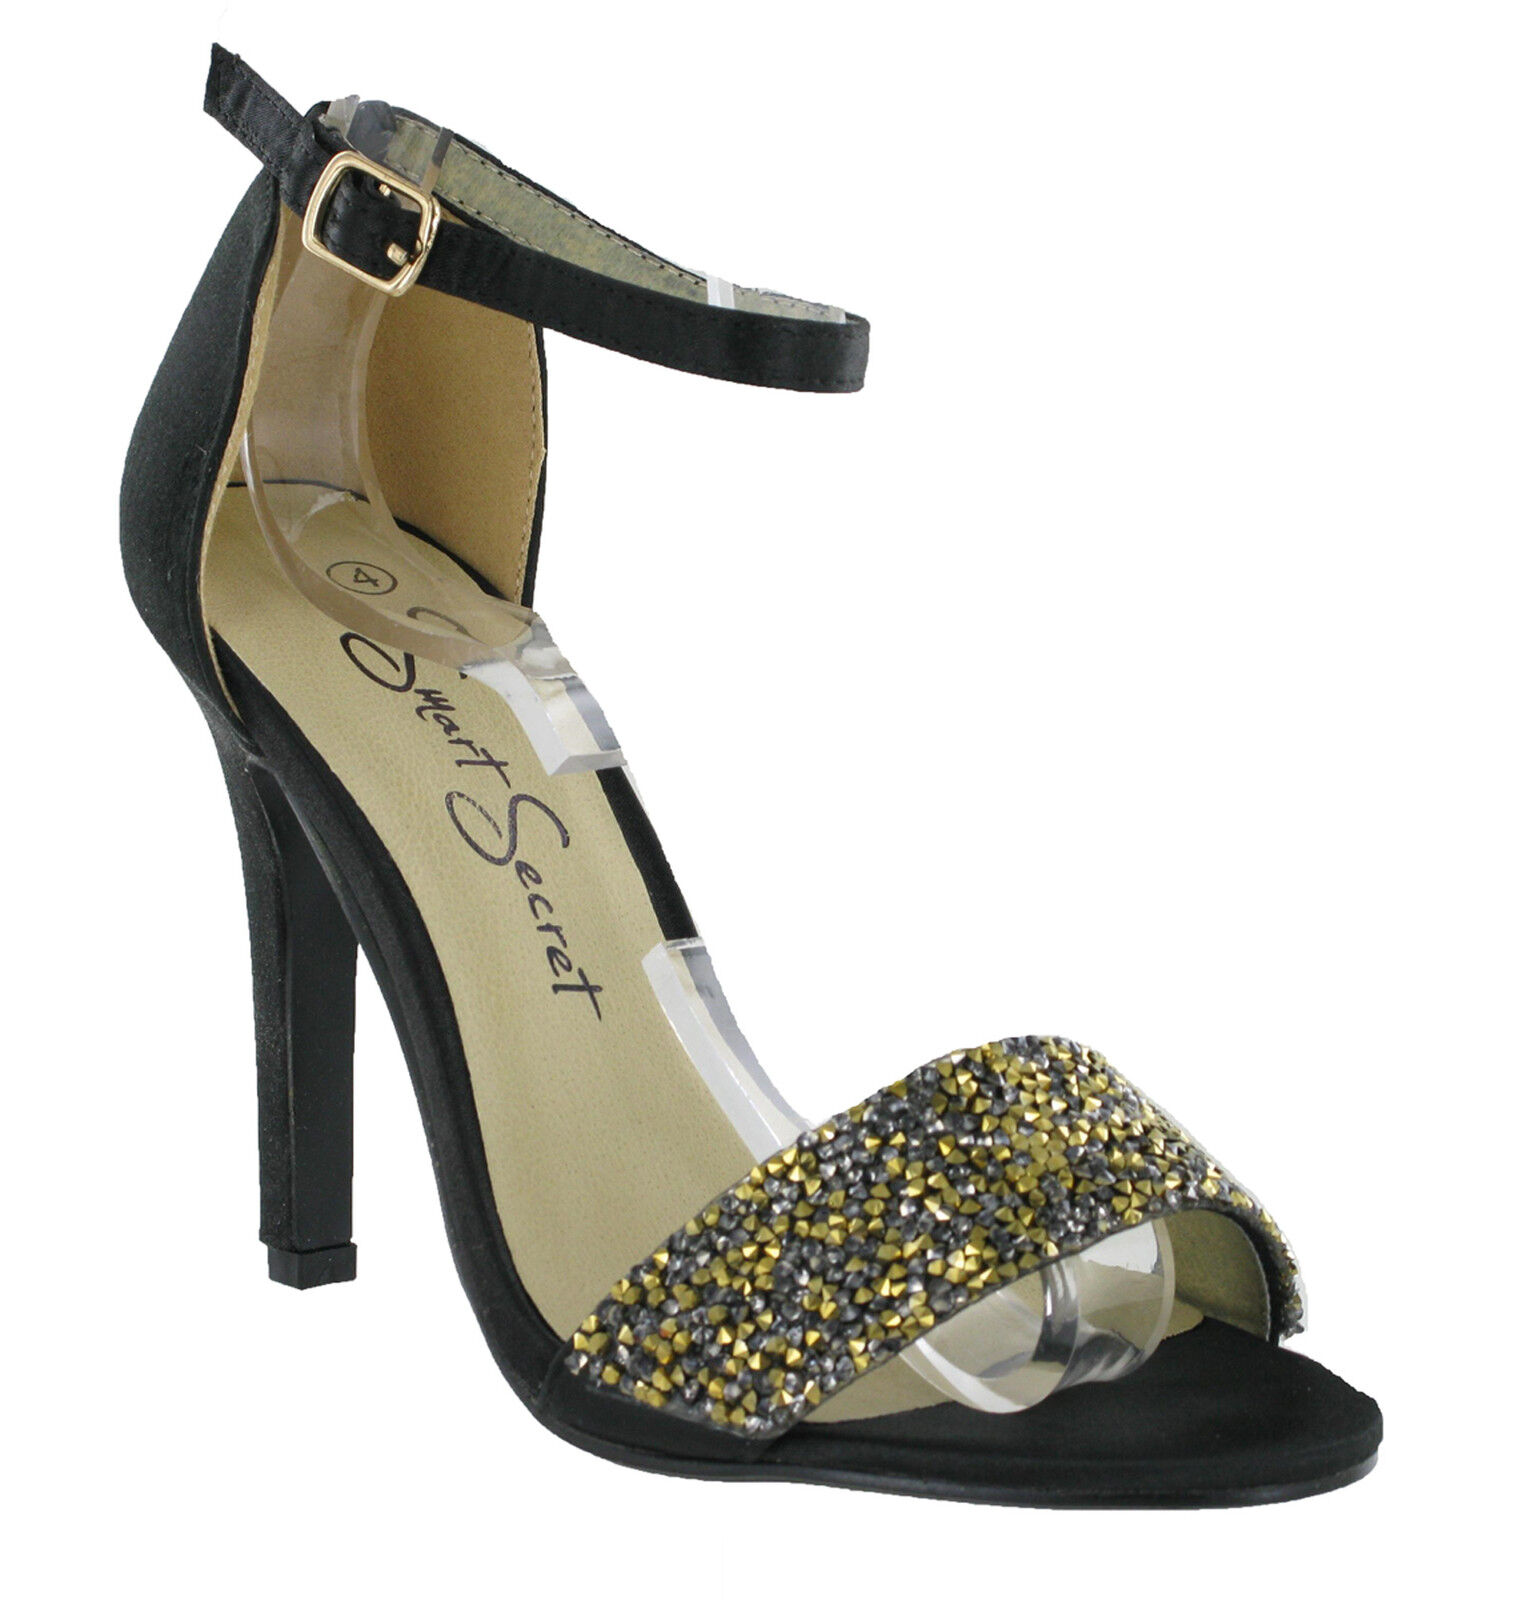 Black Satin Glitter Size Sparkling Strappy Ankle Heels Womens Shoes Size Glitter 3-8 UK 669a87